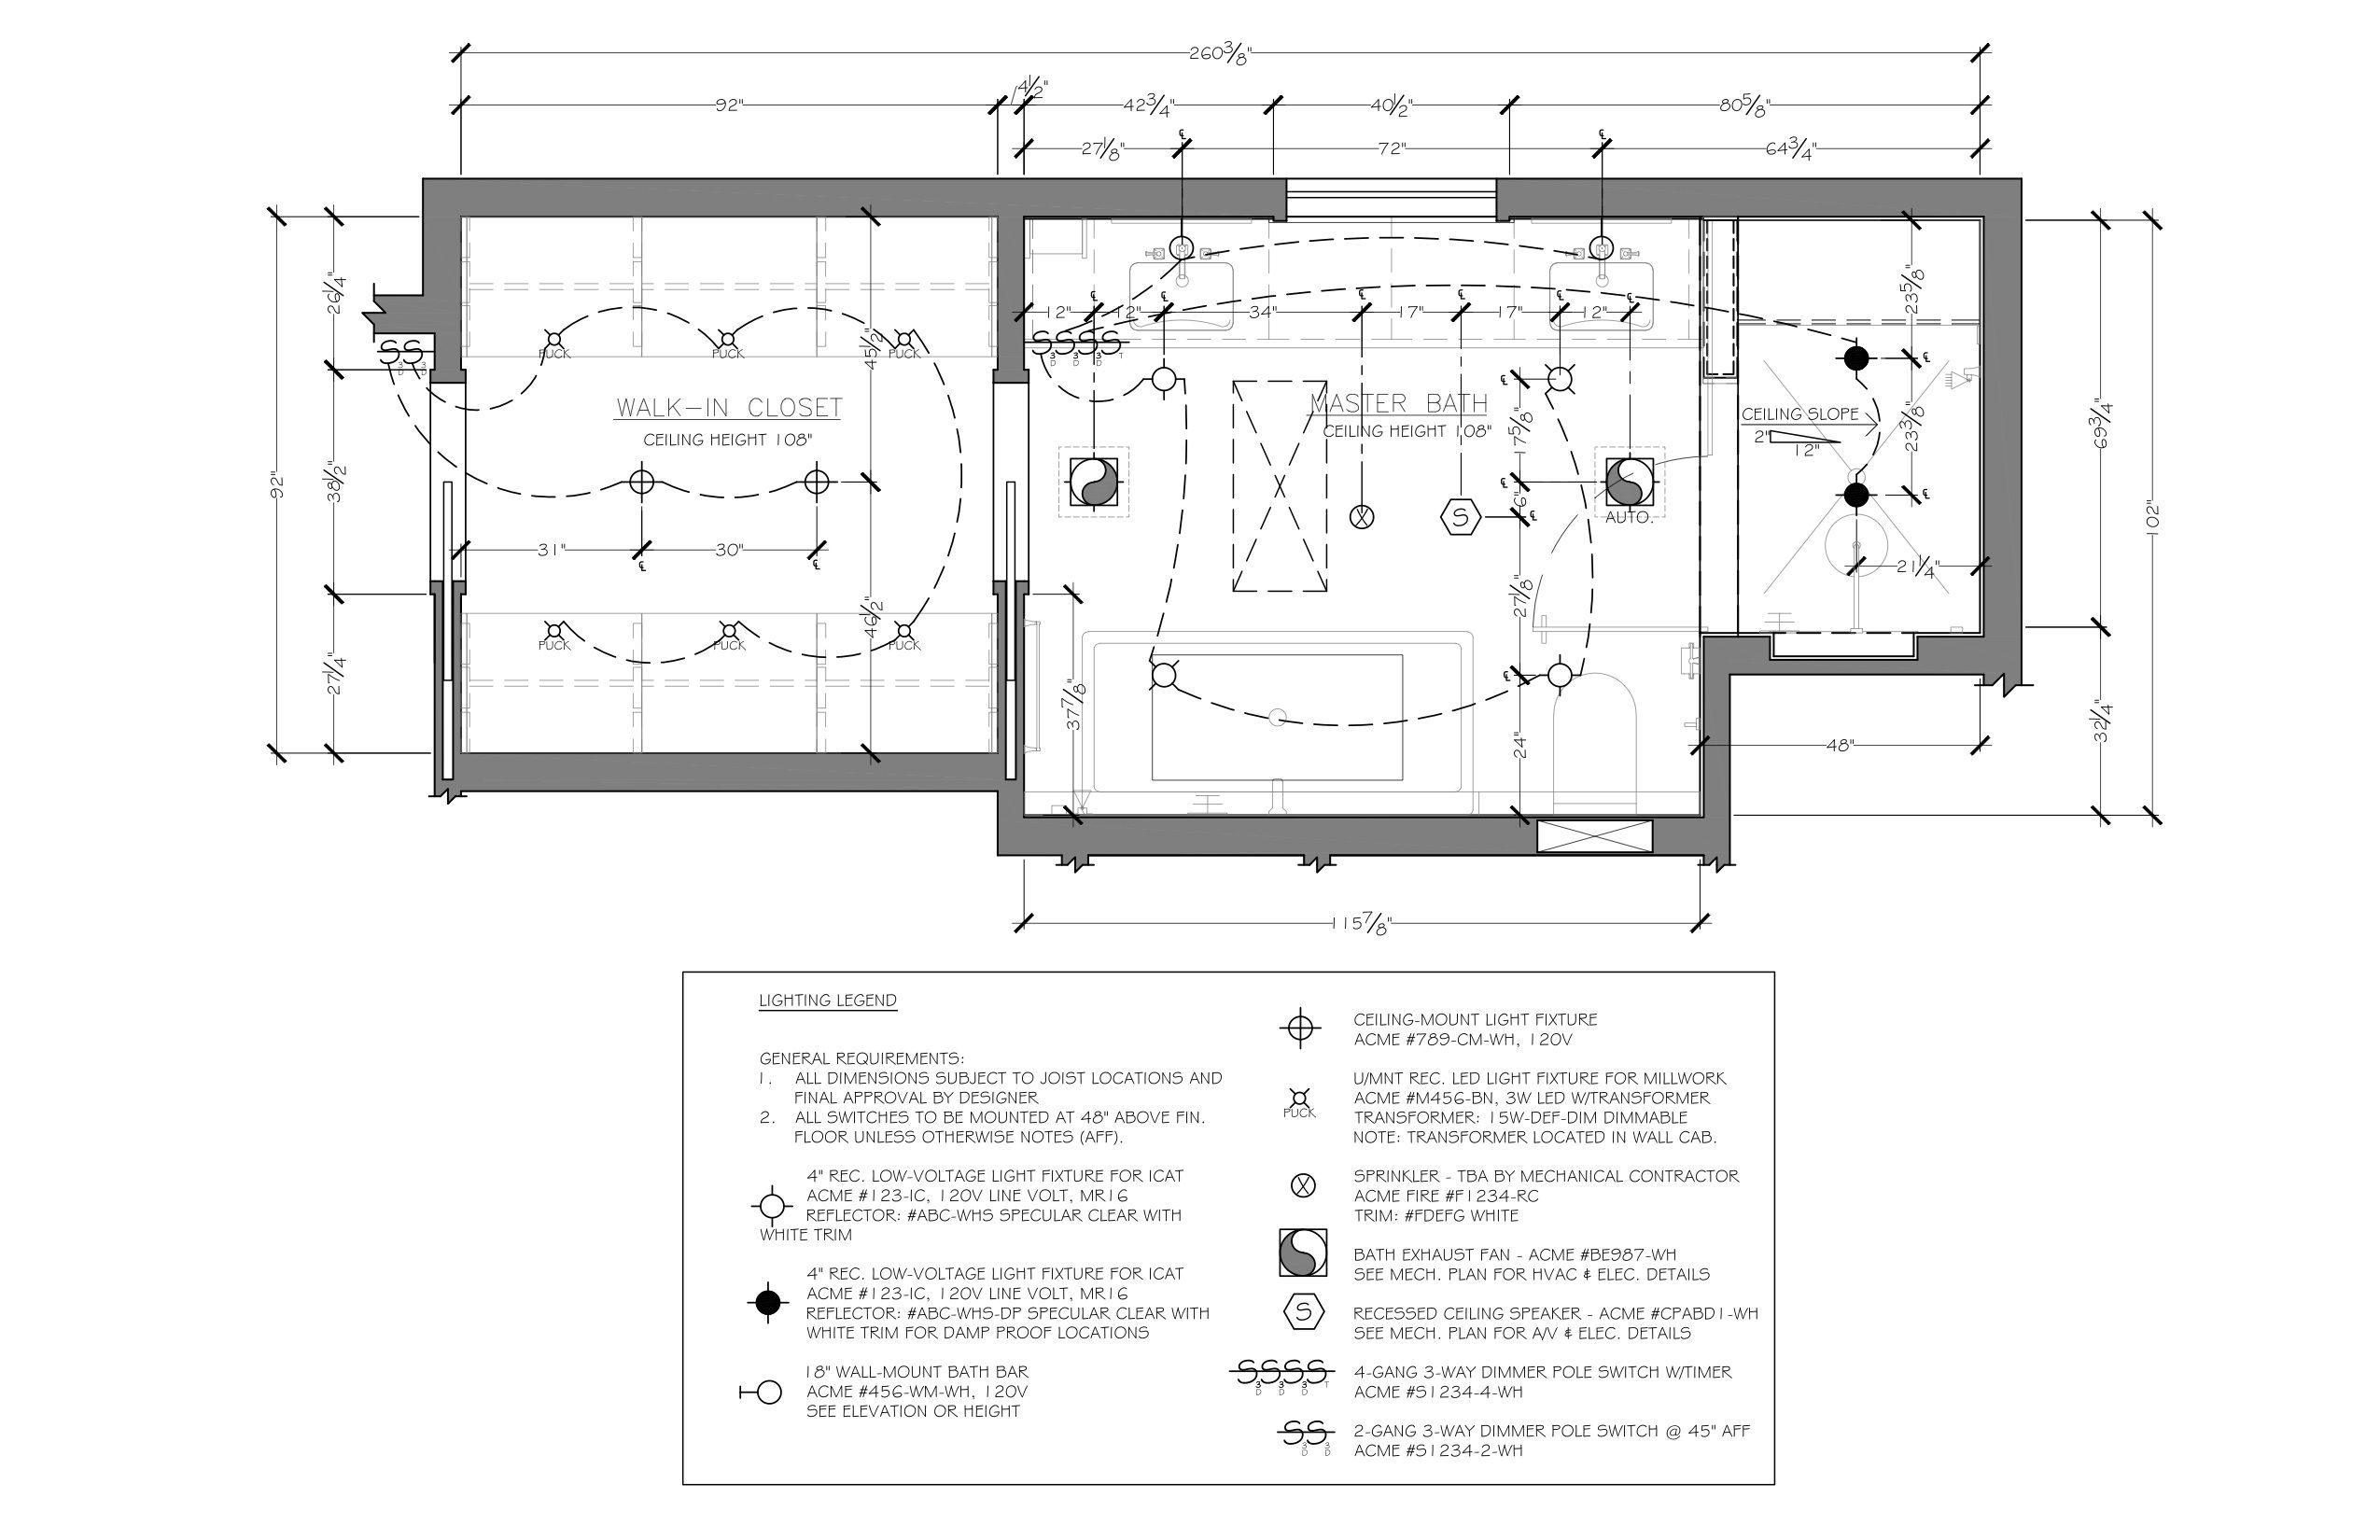 small resolution of bathroom reflected ceiling plan example c 2013 corey klassen ckd used under permission from the national kitchen bath association